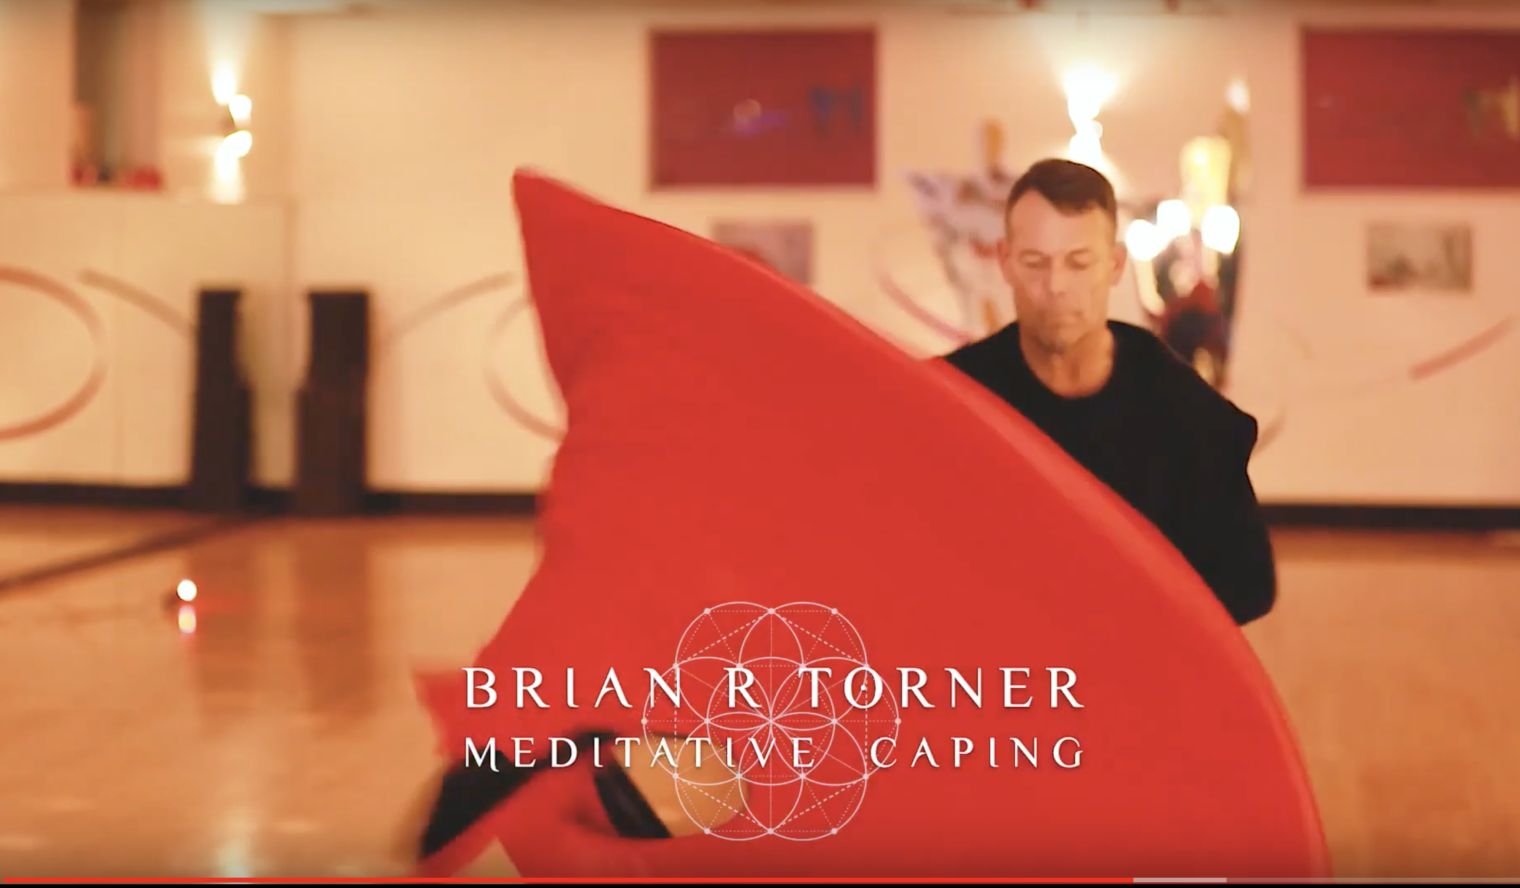 If a picture were worth 1000 words…CHAKRADANCE sound bathing & meditative caping SCREEN CAPTURES II